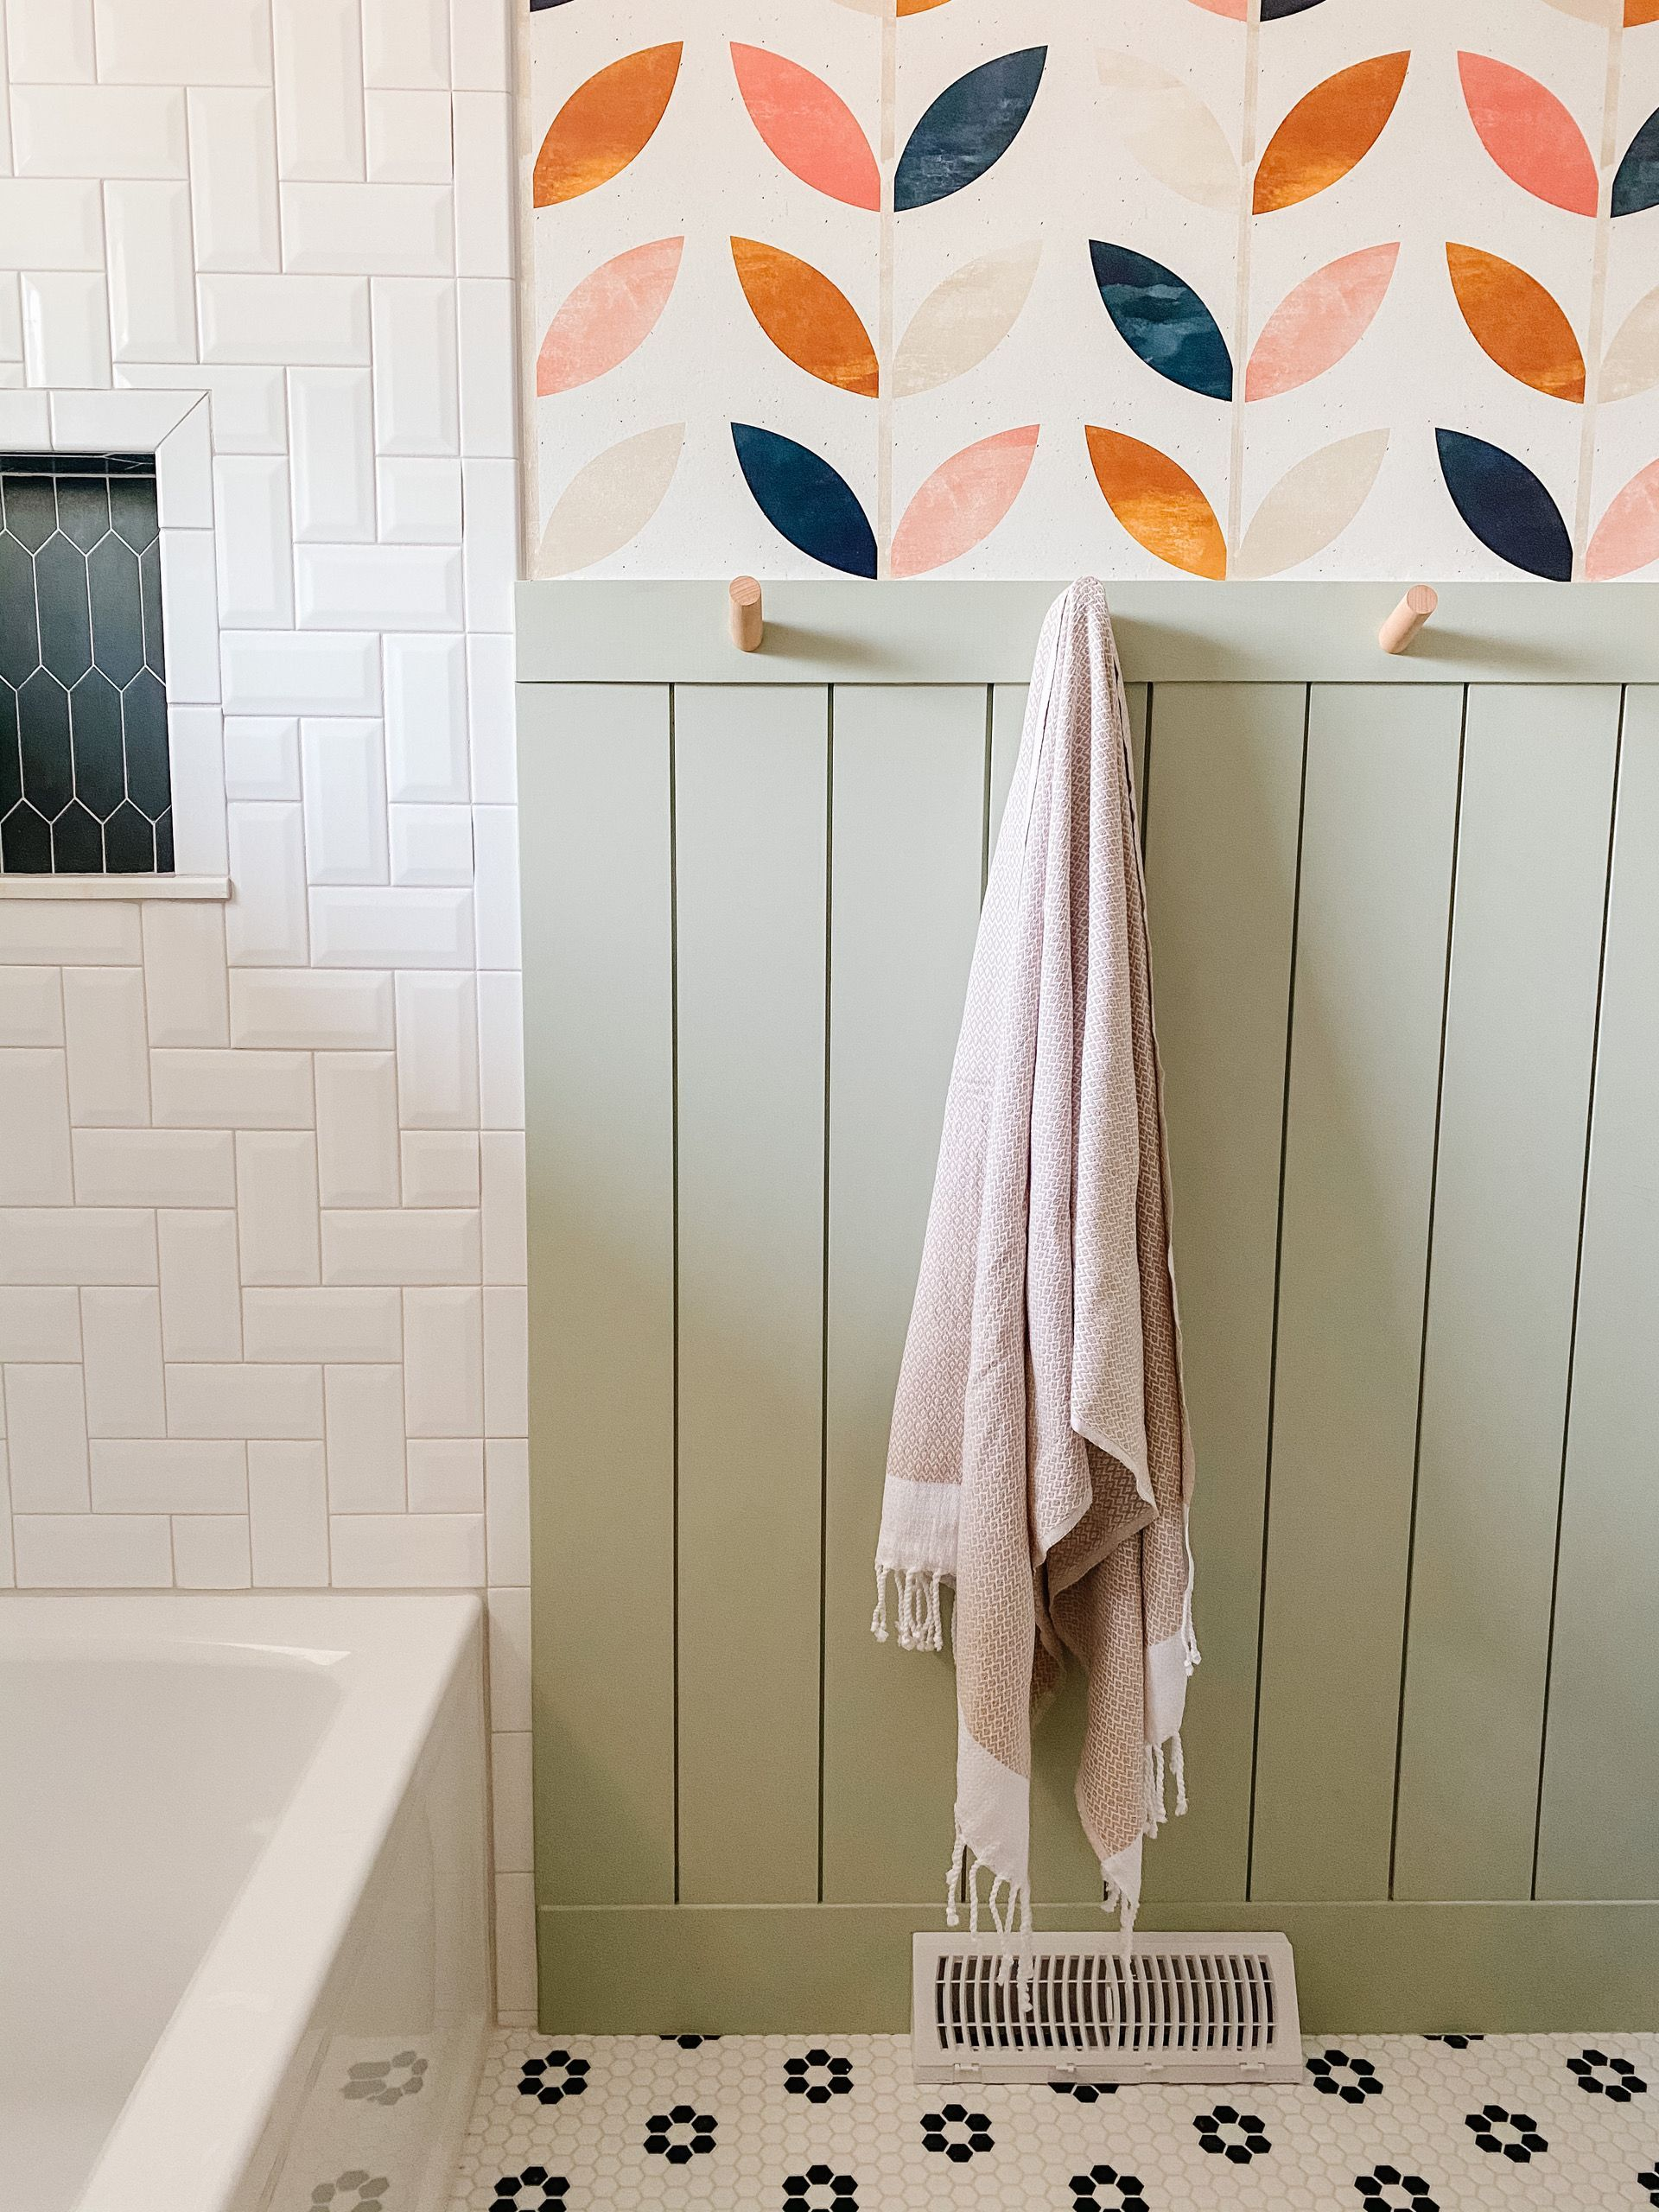 Our Bathroom Wallpaper Reveal Boho Wallpaper Round Up Sprucing Up Mamahood Wallpaper Accent Wall Bathroom Boho Bathroom Bathroom Wallpaper